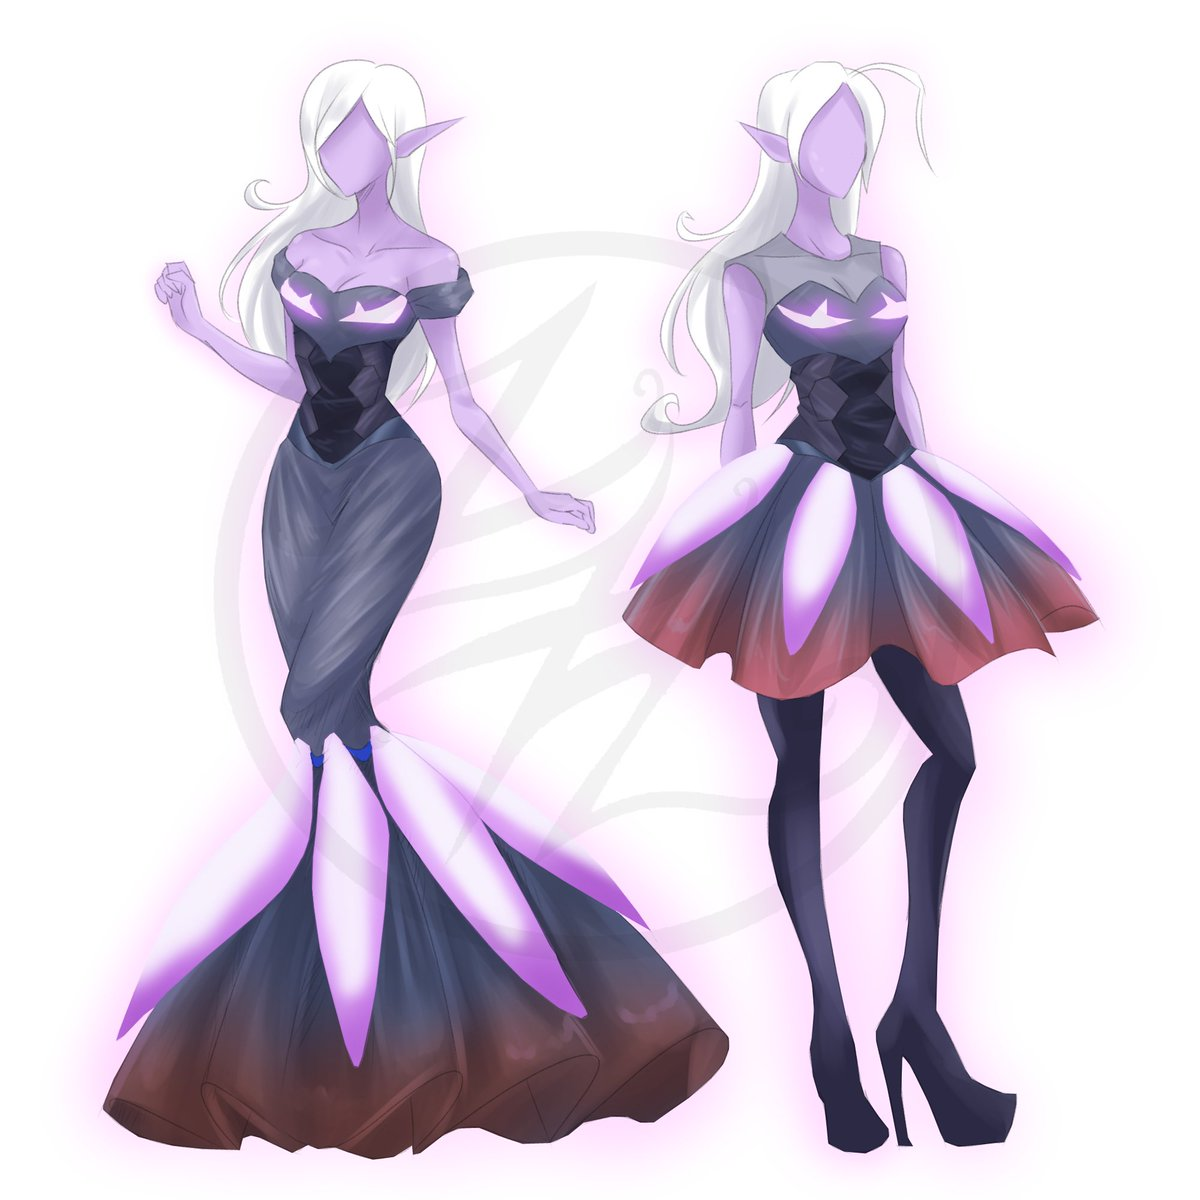 Feel Free To Use These For Your Next Voltroncosplay Or Formal Occasion Must Credit Me Fashionillustration Illustration Voltronlegendarydefender